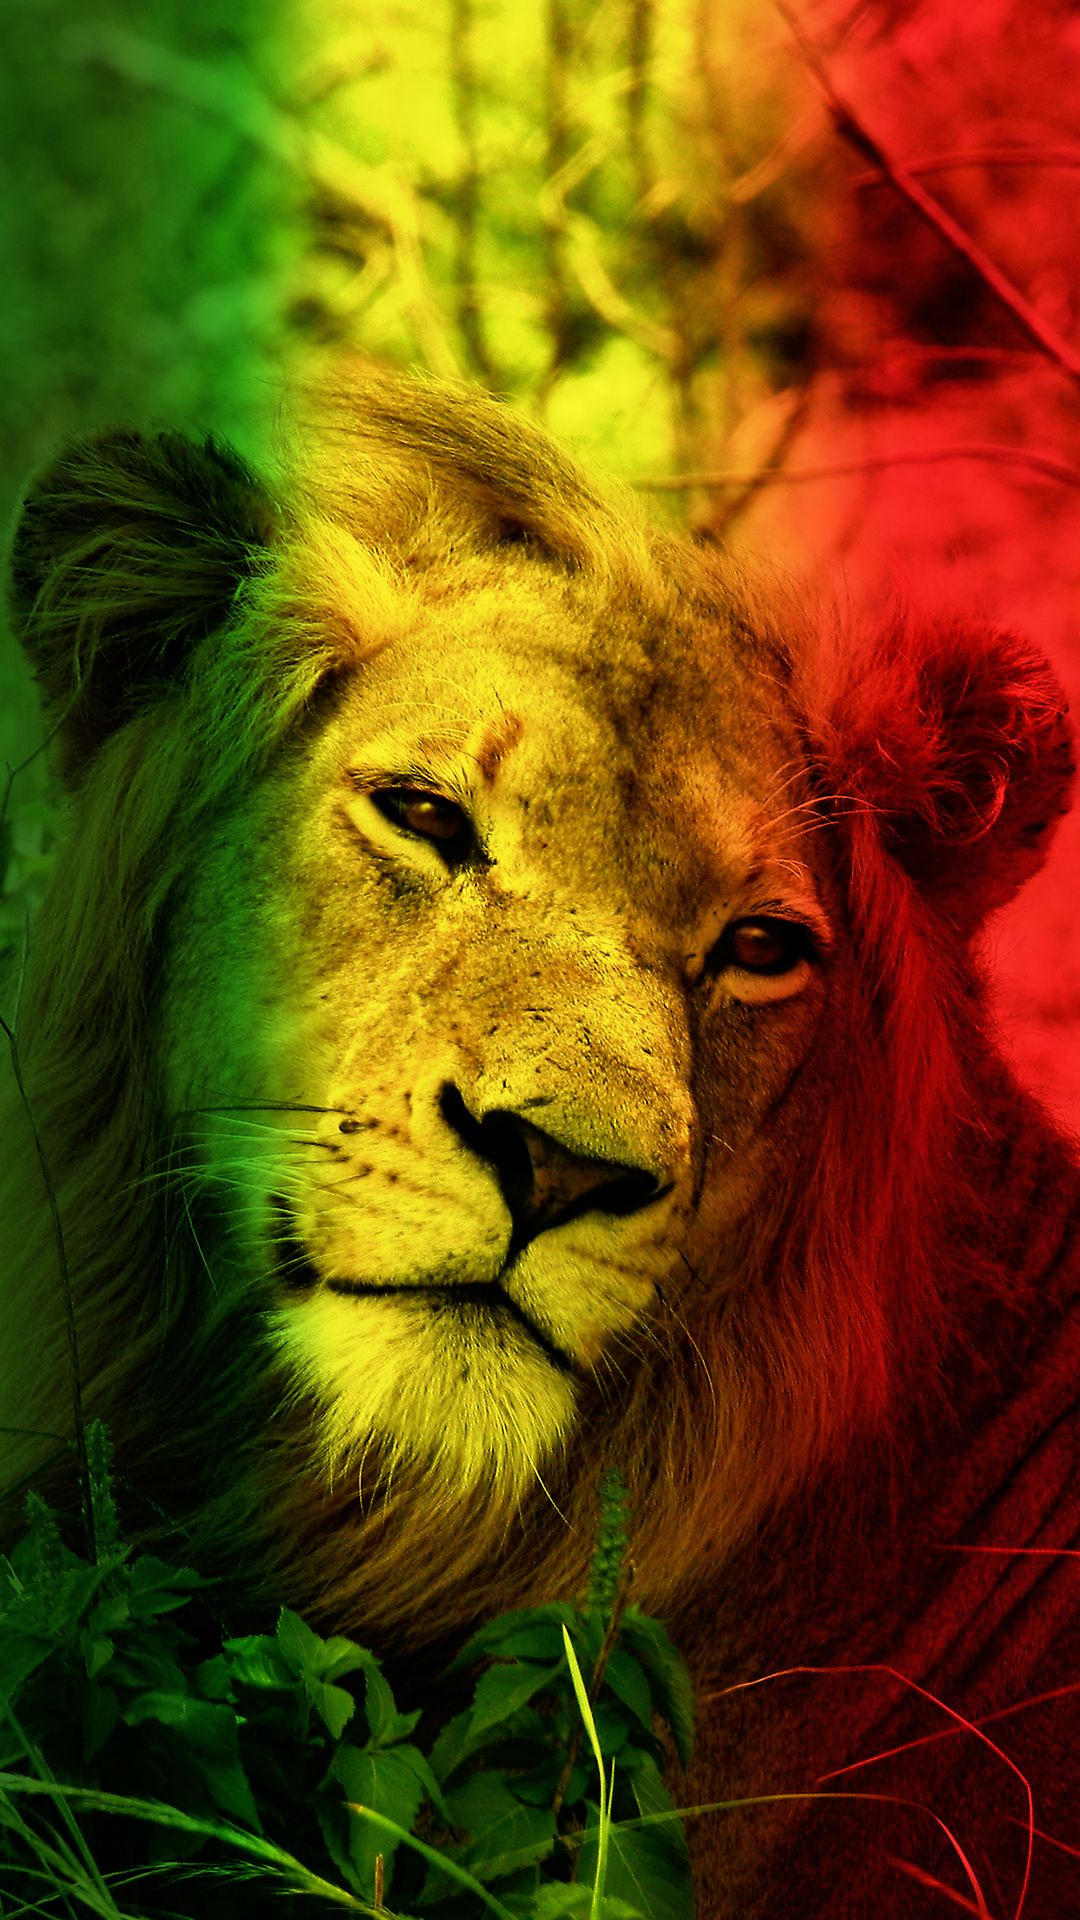 Lion Abstract Photo in 2020 Abstract photos, Cool